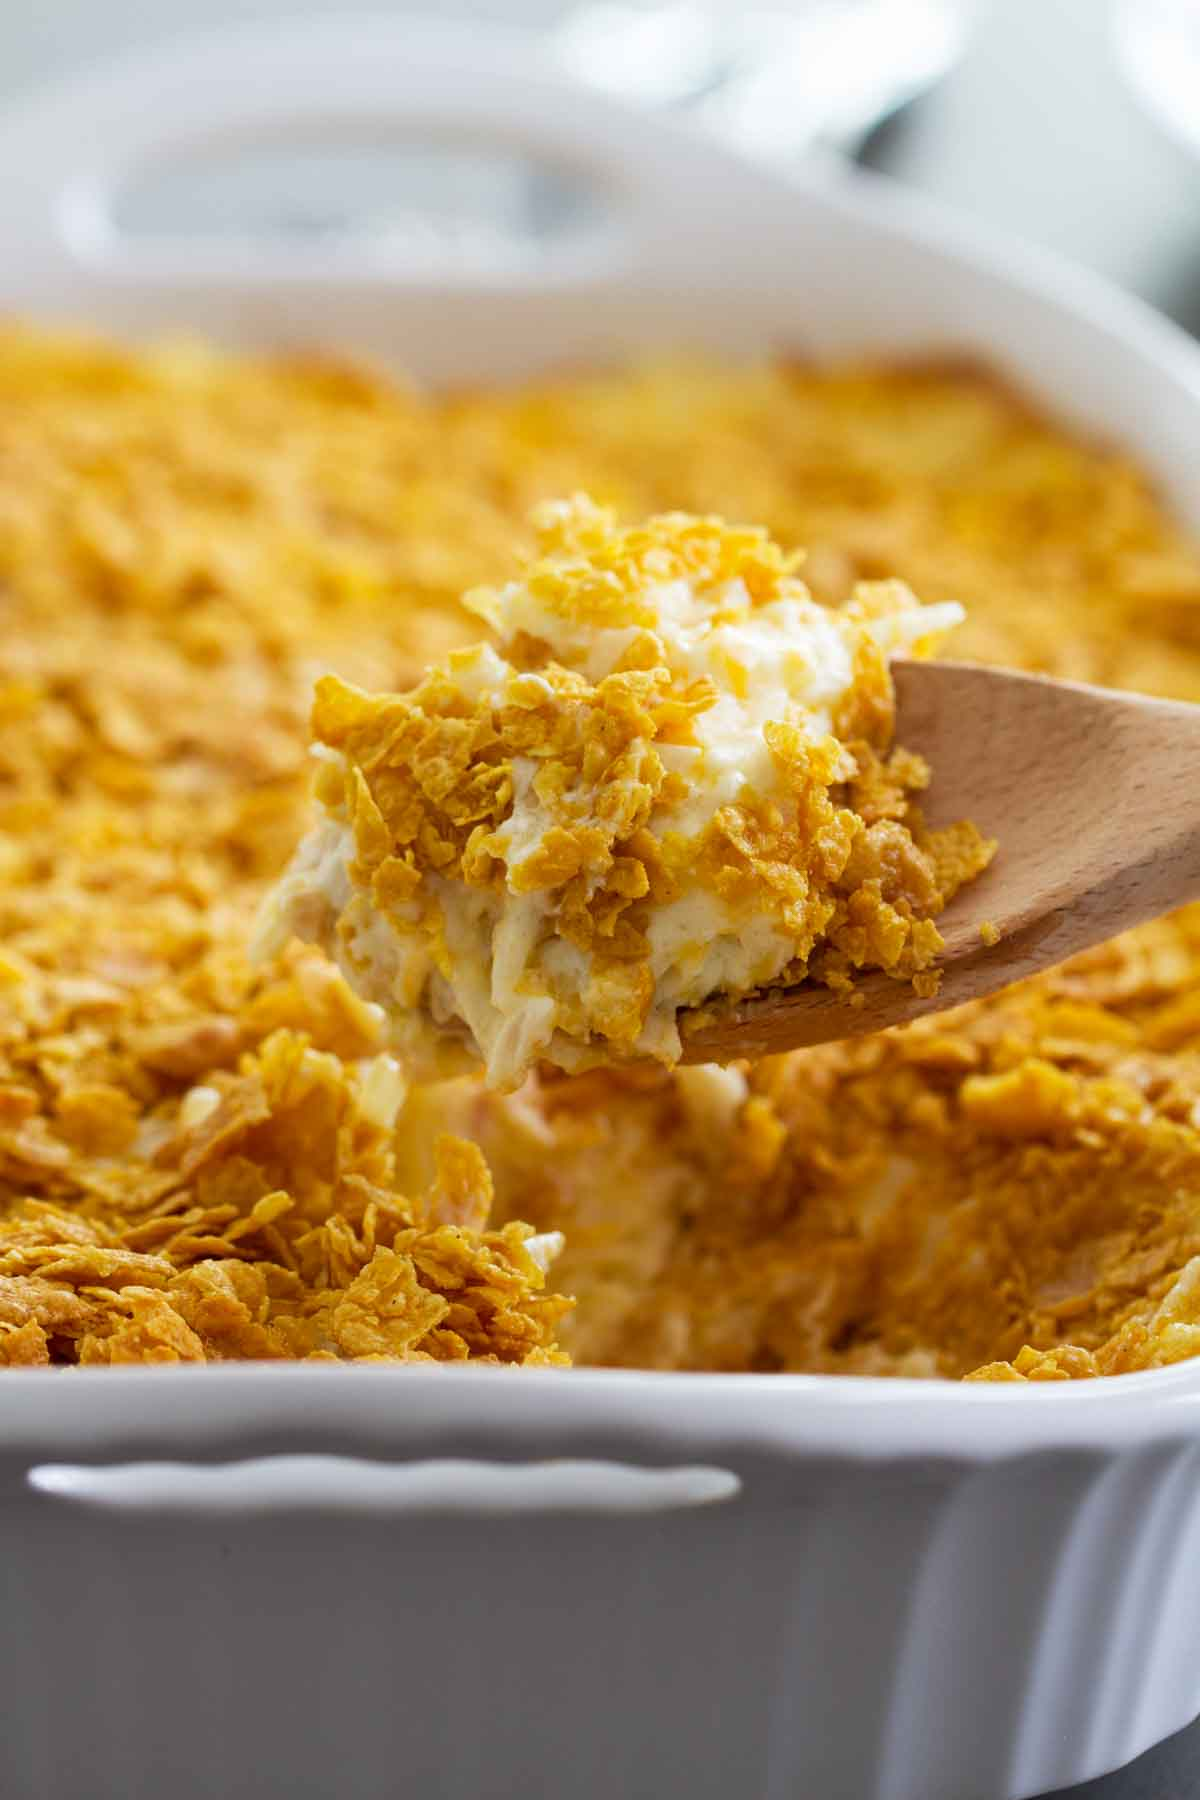 scoop of funeral potatoes in a casserole dish